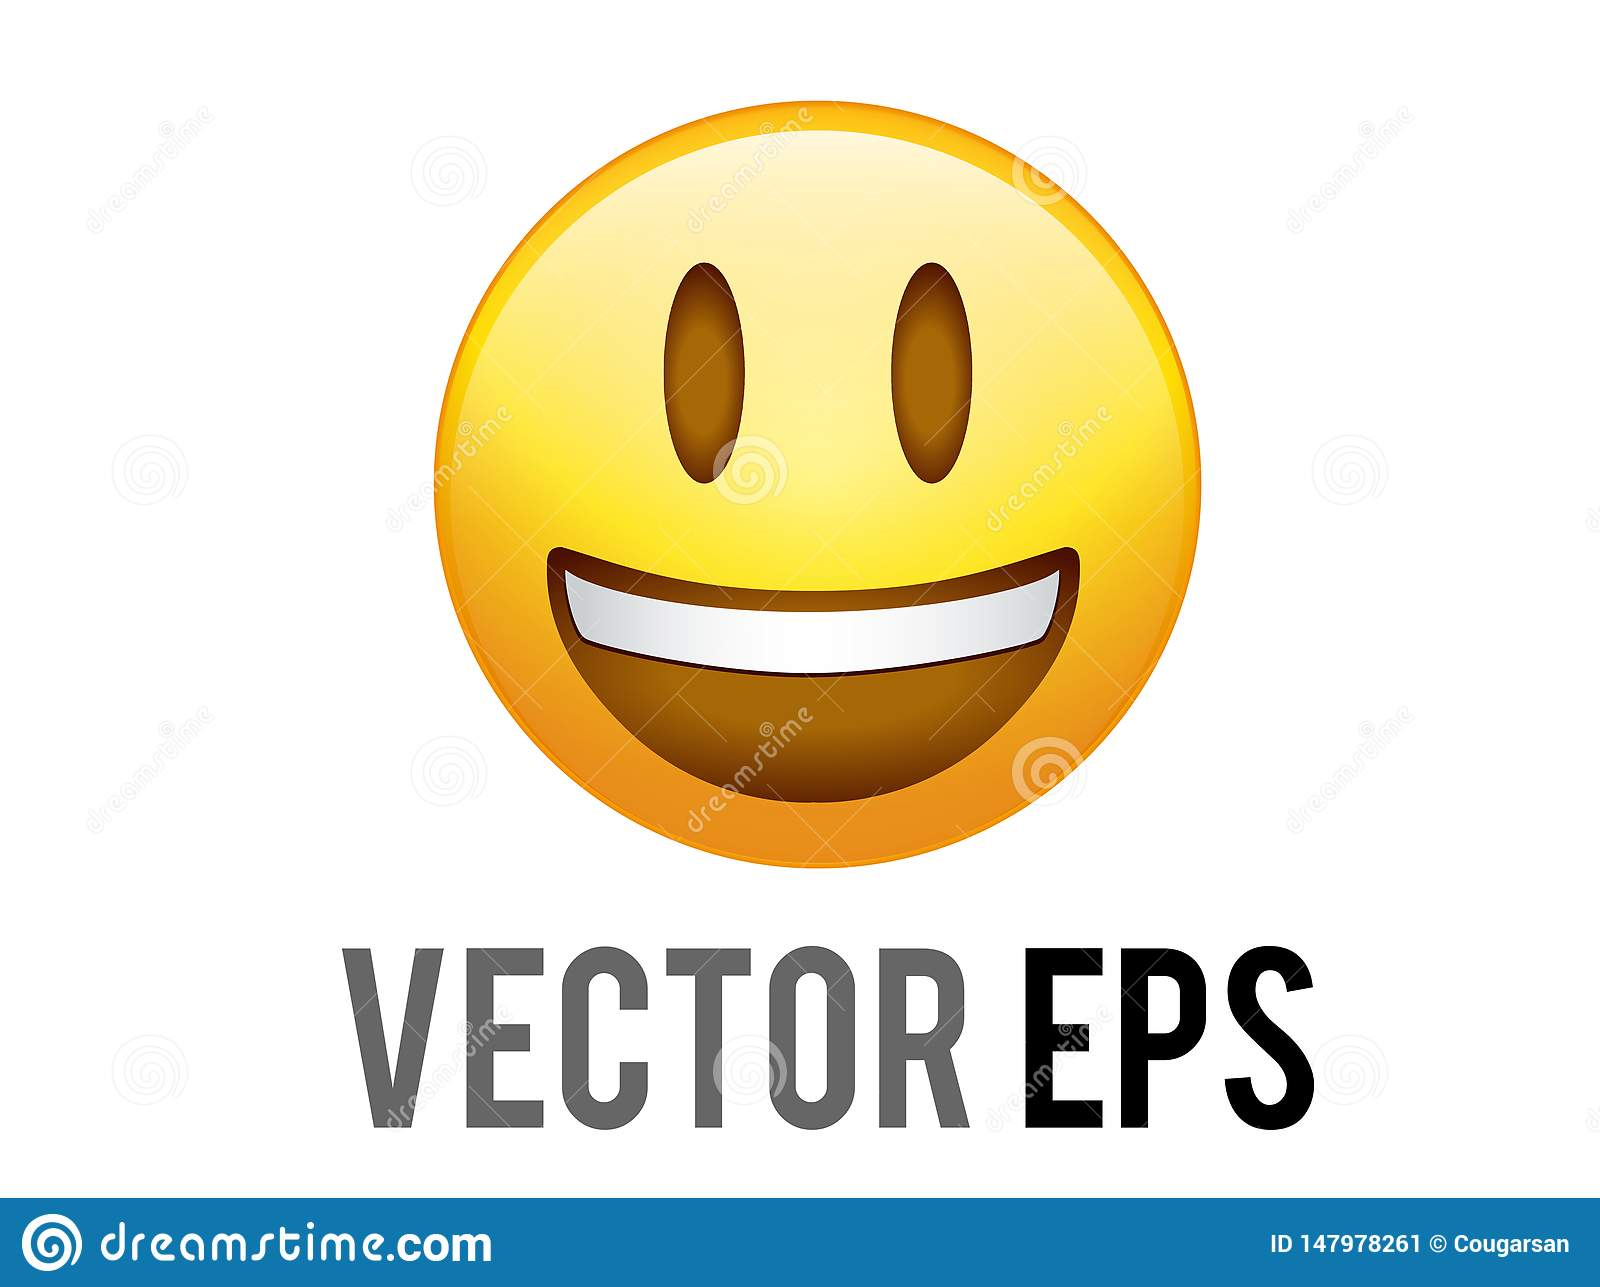 Vector gradient yellow smiley face with white teeth icon